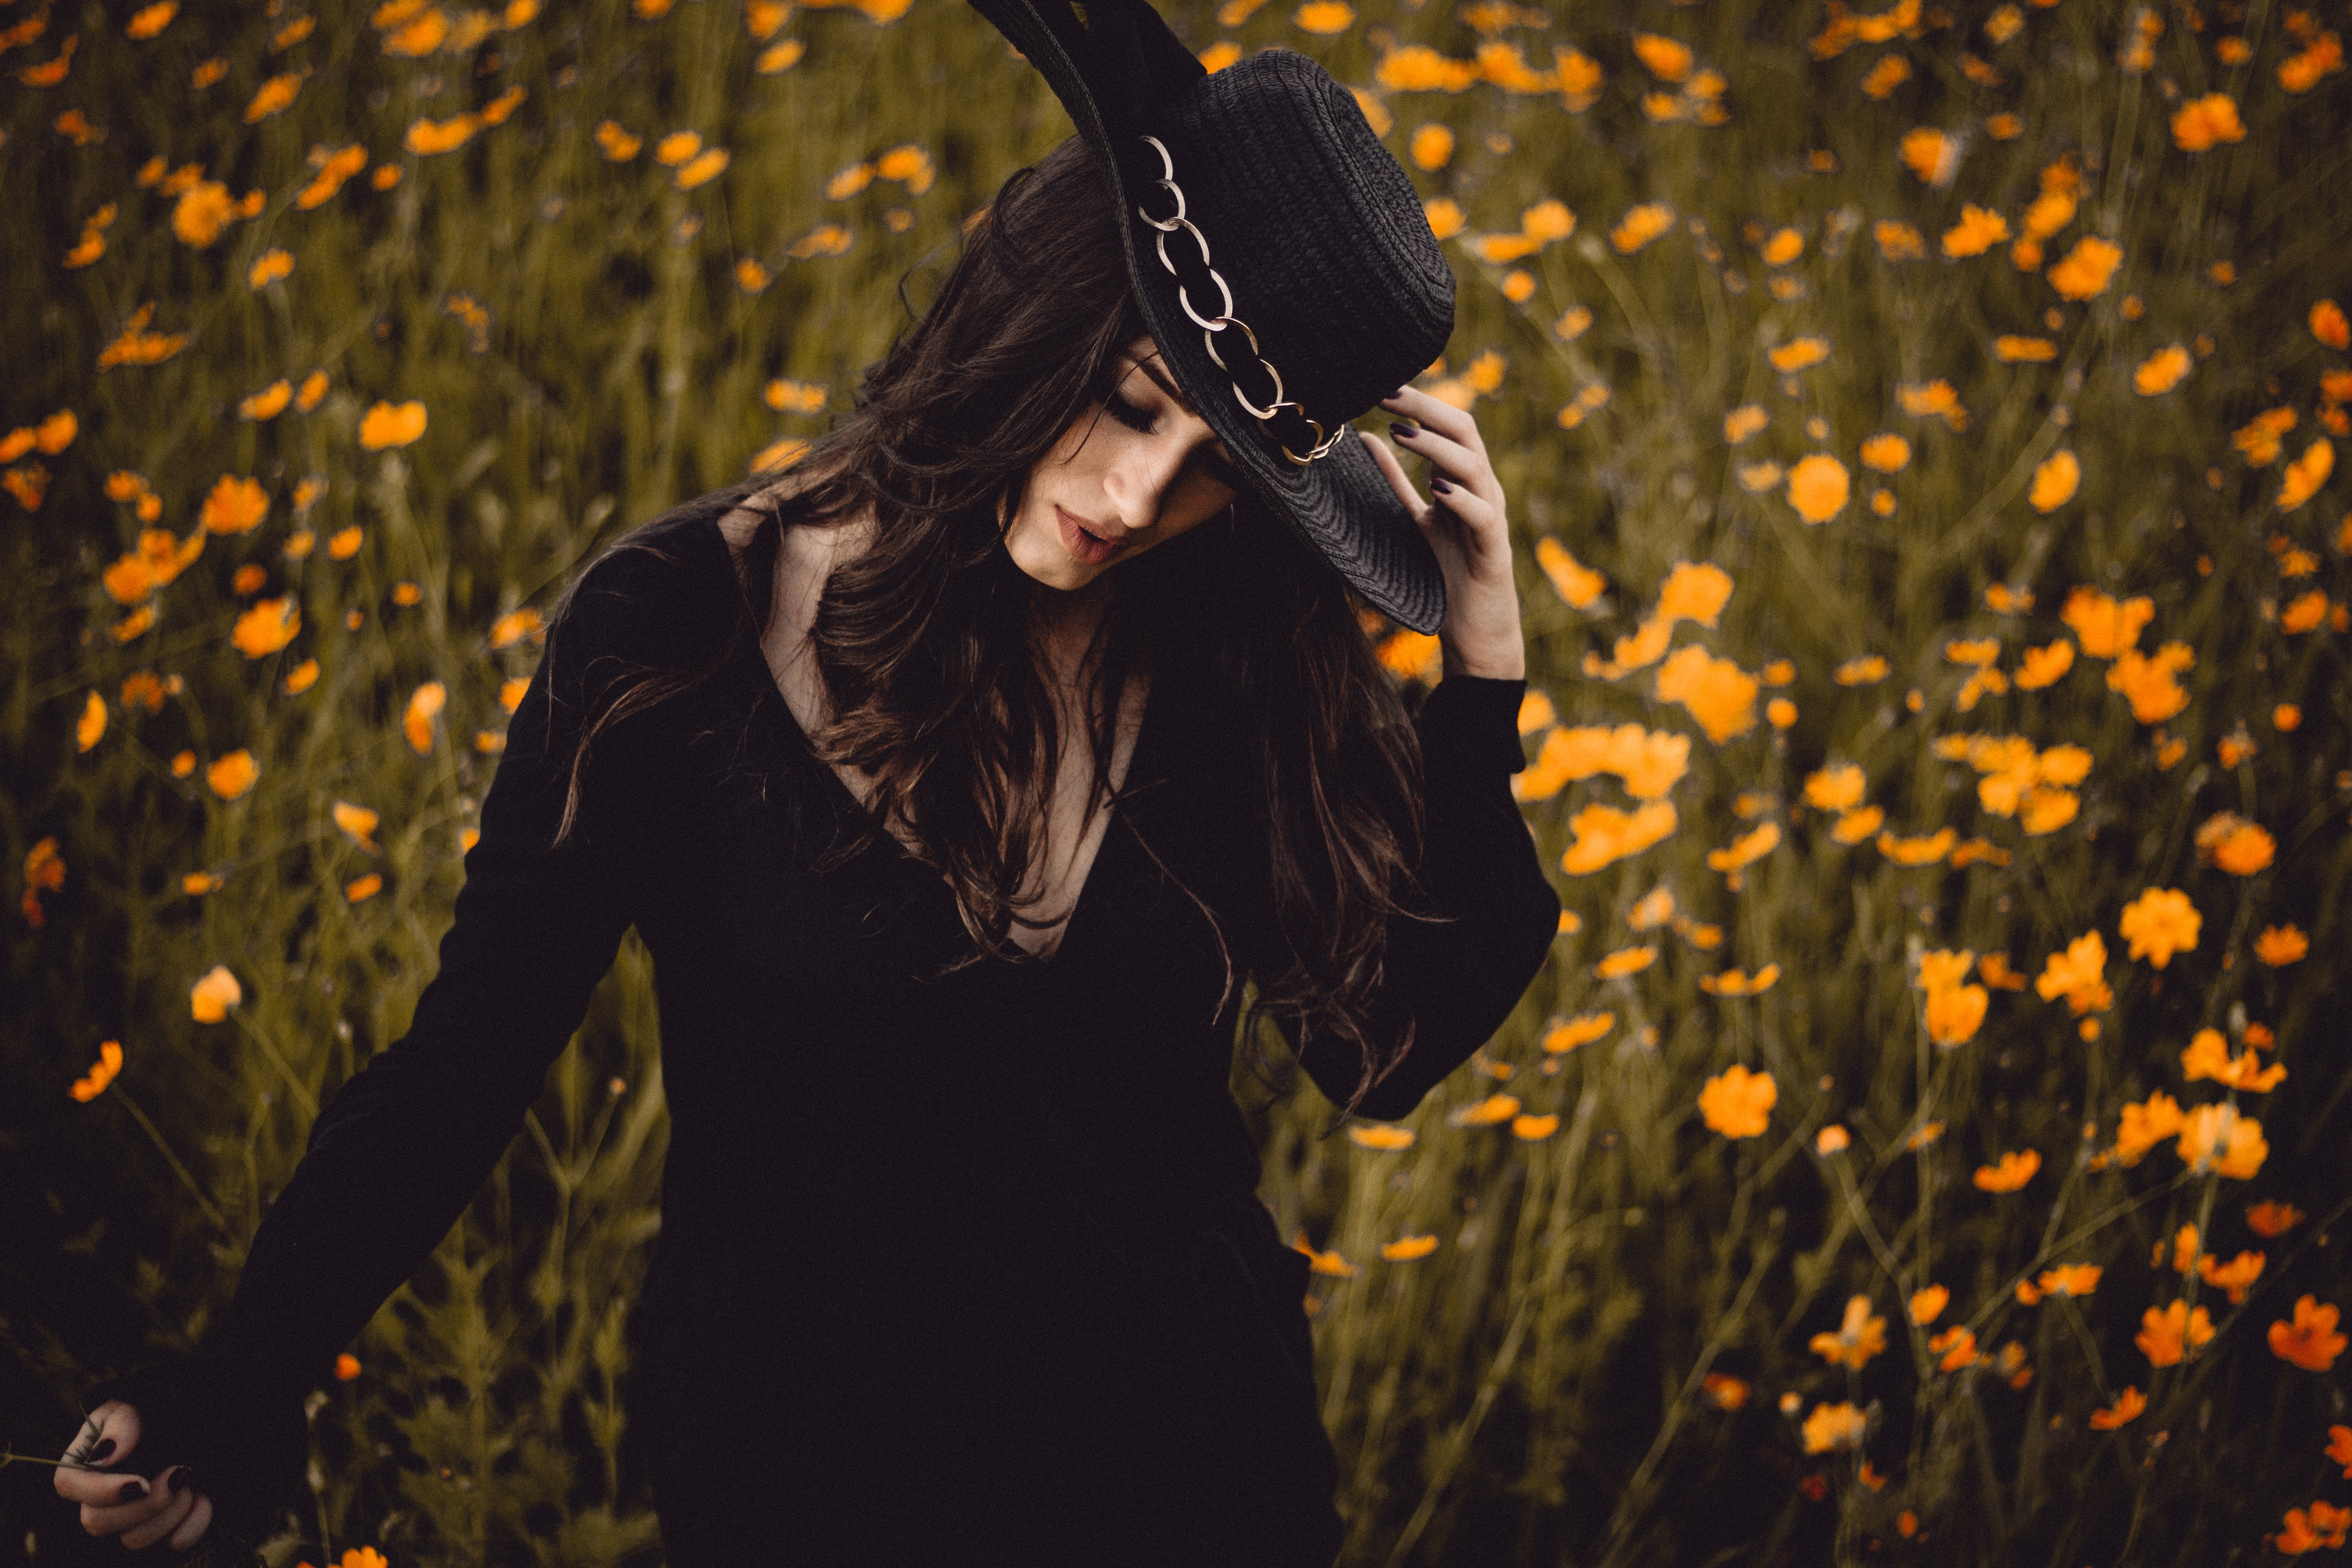 A dark-haired woman in a black hat and a black dress in a field of yellow flowers